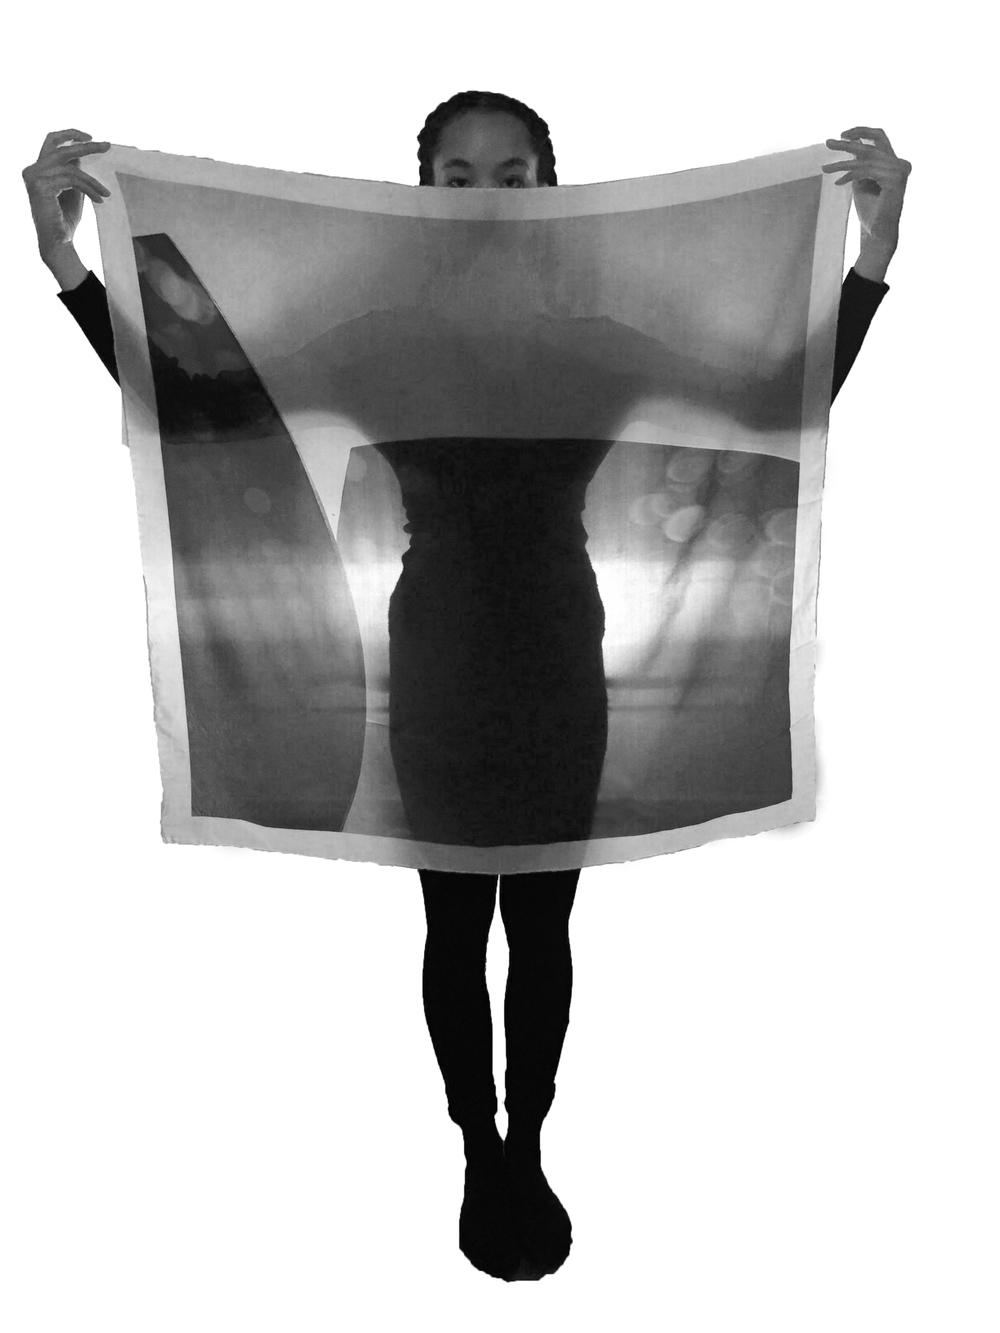 "Polaris, approximately 40""x40"", 12 mm crepe de chine and heavily backlit."